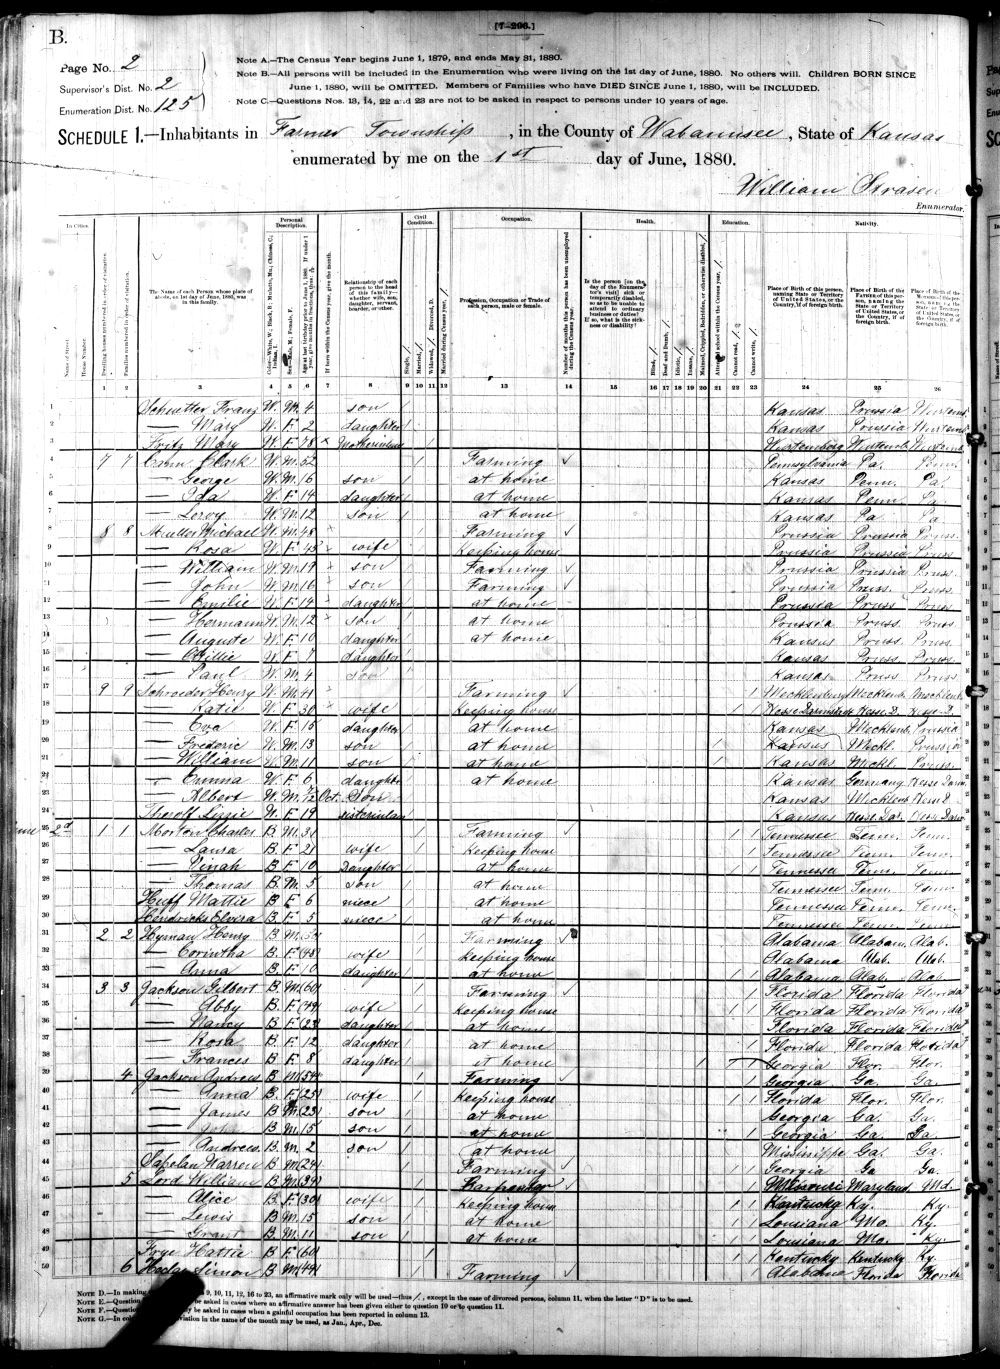 1880 census of Farmer Township, Wabaunsee County, Kansas - 1